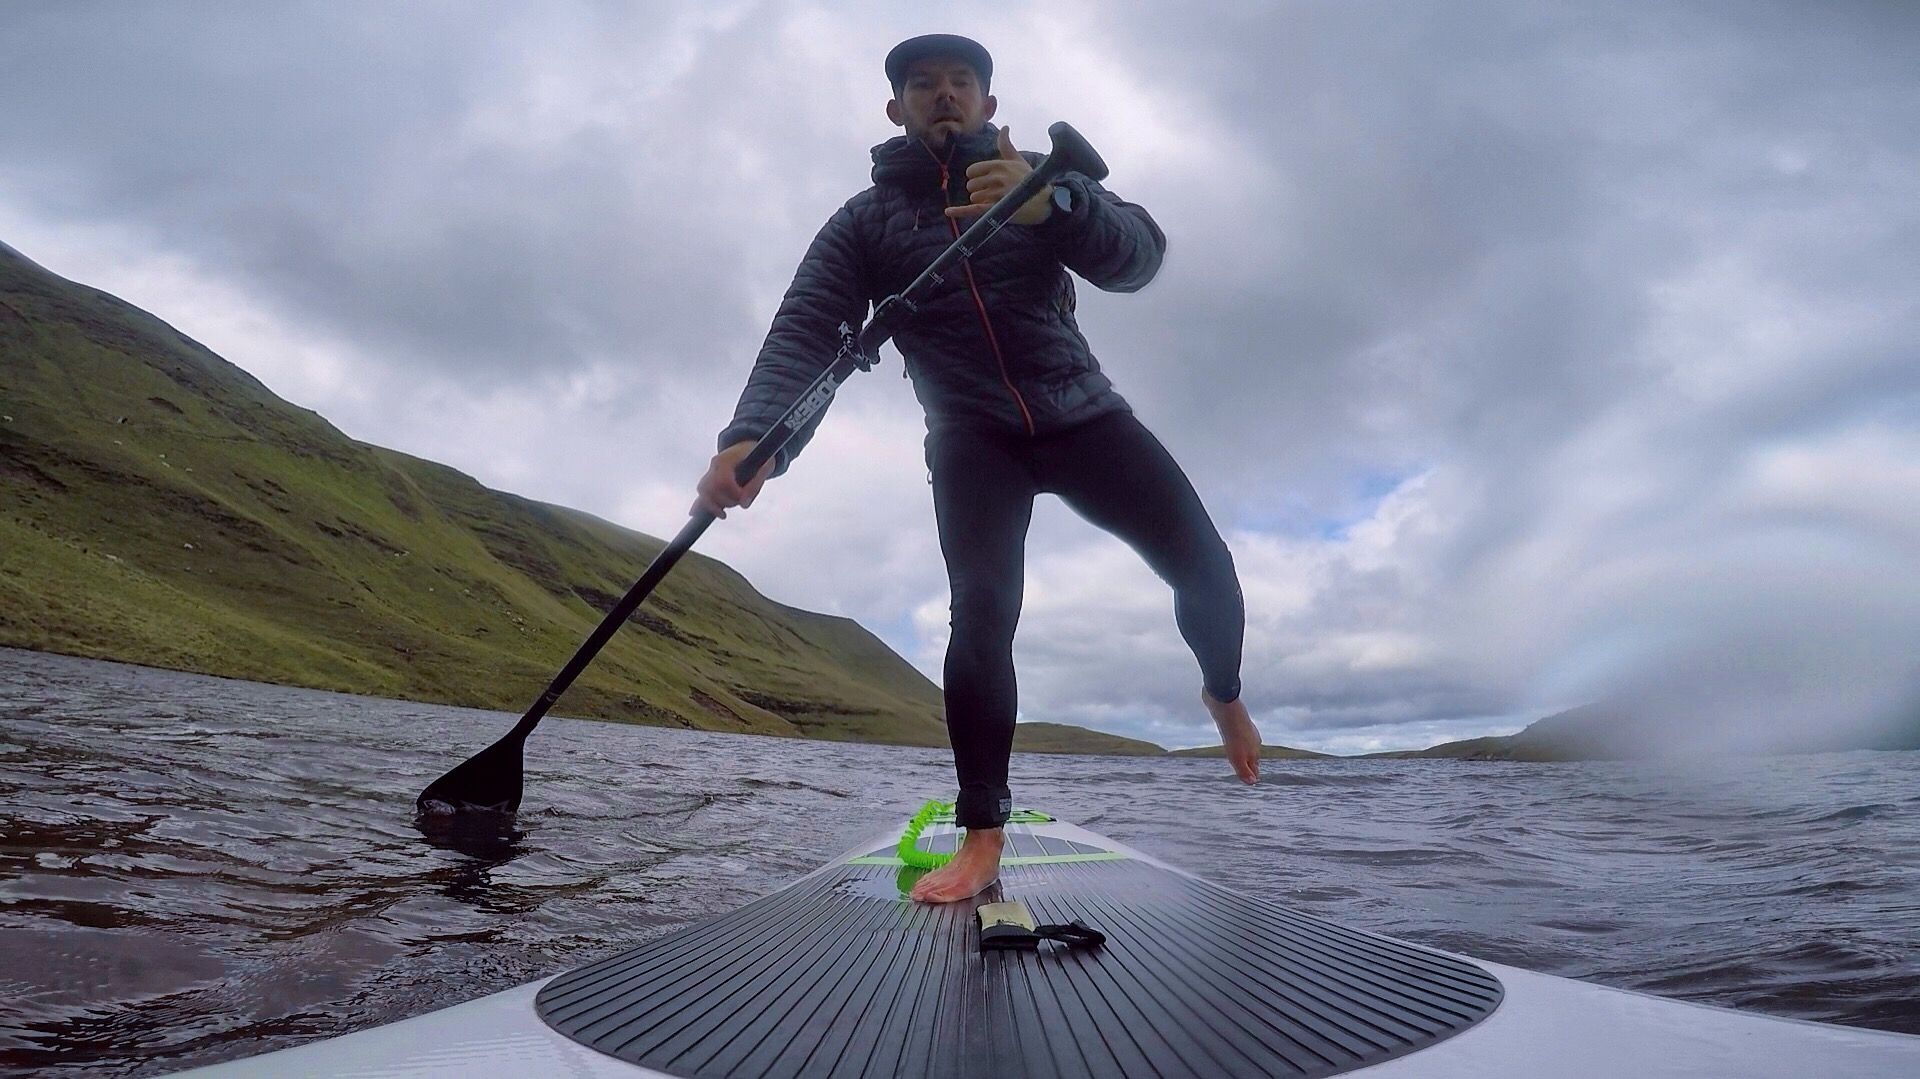 Winter paddle boarding trip: the 2 most beautiful mountain lakes in the south of Wales